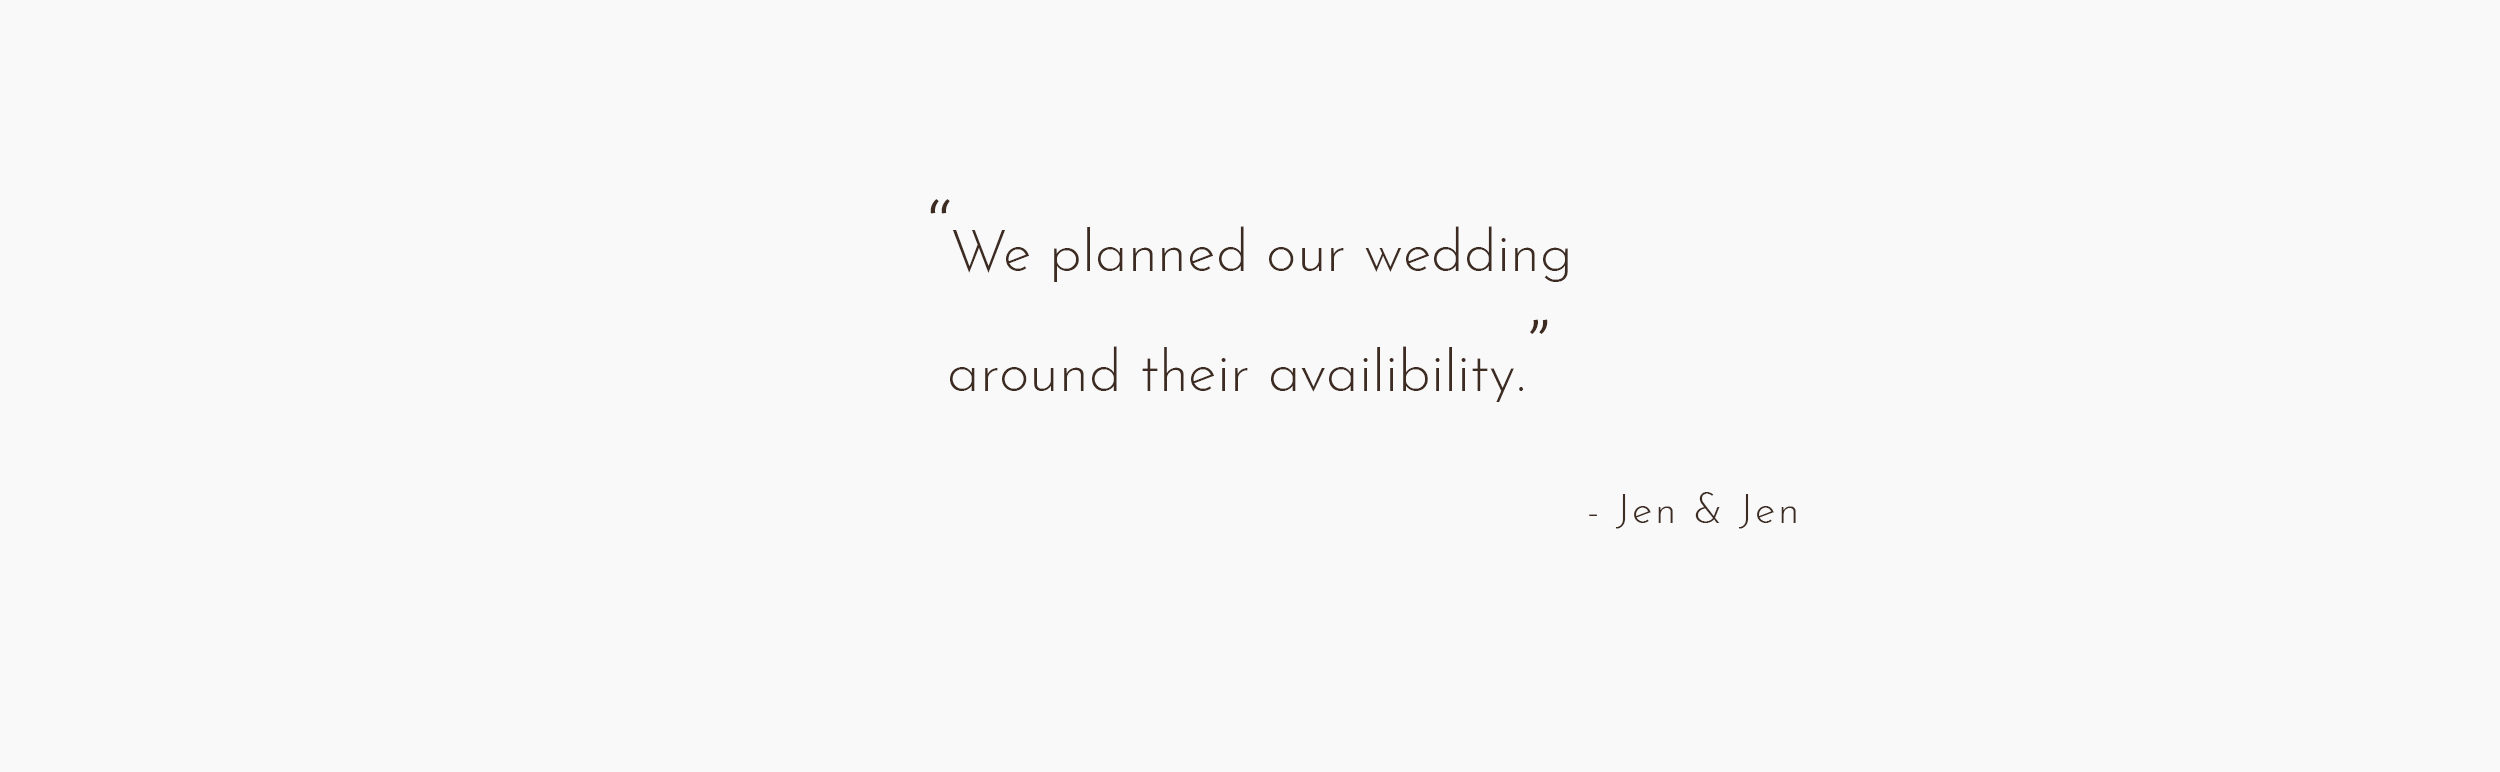 stark_photography_wedding_testimonials_003